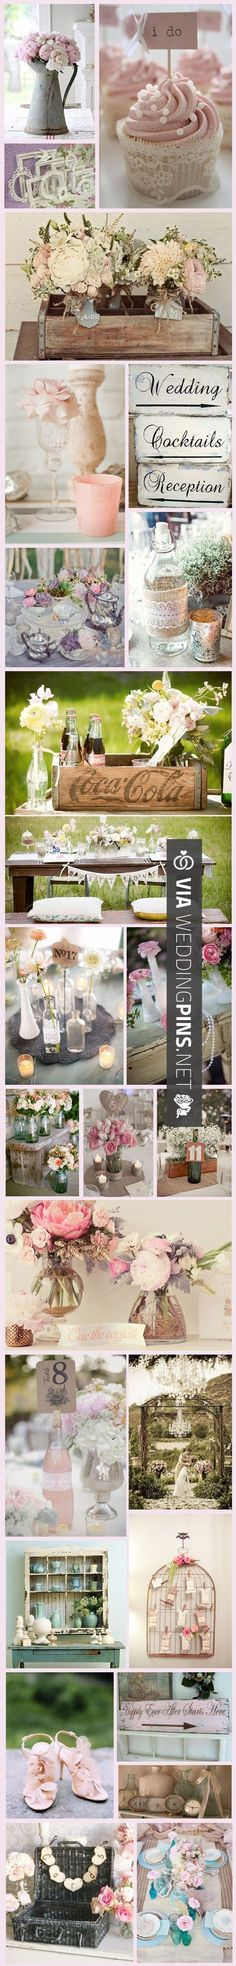 Cool - shabby chic wedding :)   CHECK OUT MORE IDEAS AT WEDDINGPINS.NET  